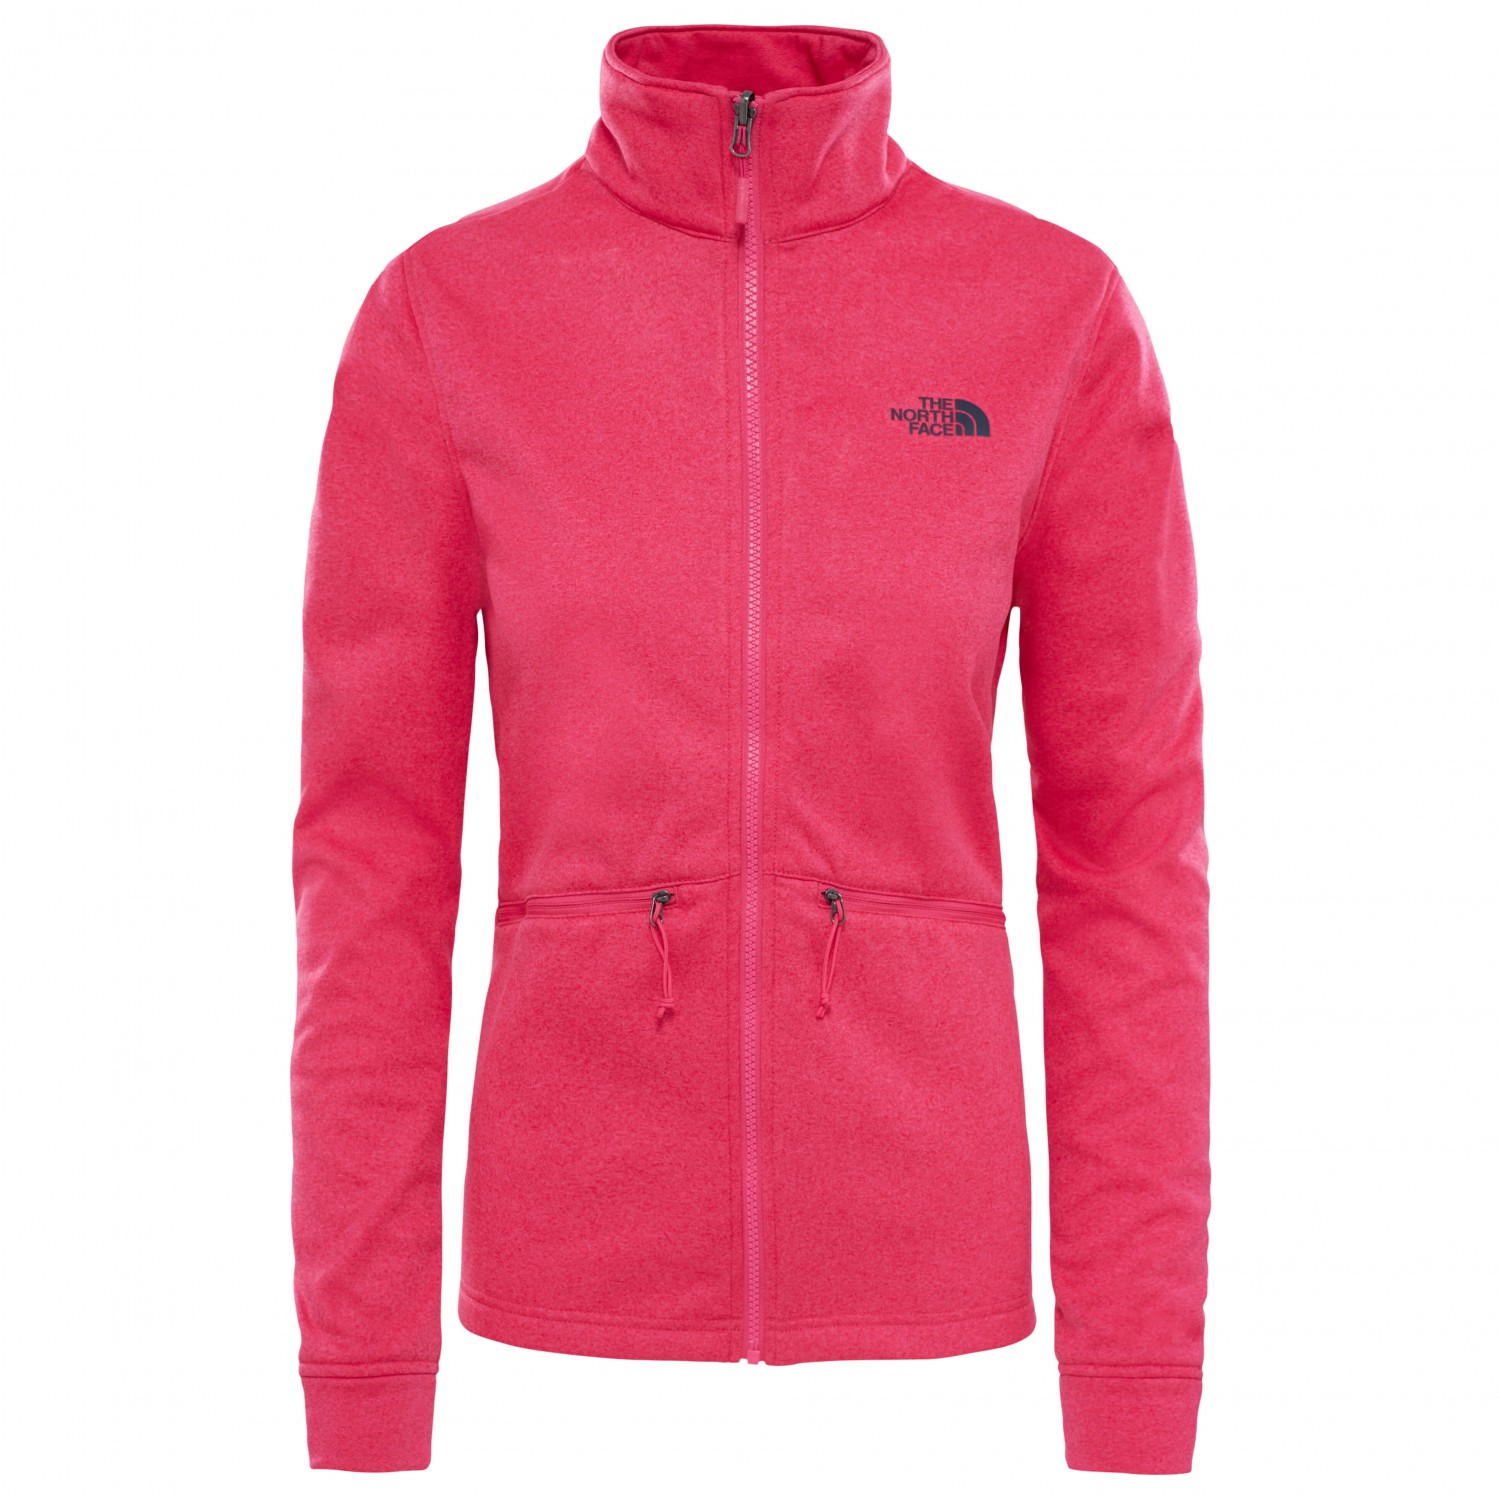 Tnf Face The BlackXs North Tanken Triclimate 3 Women's 1 Jacket In RL4A3Sc5jq